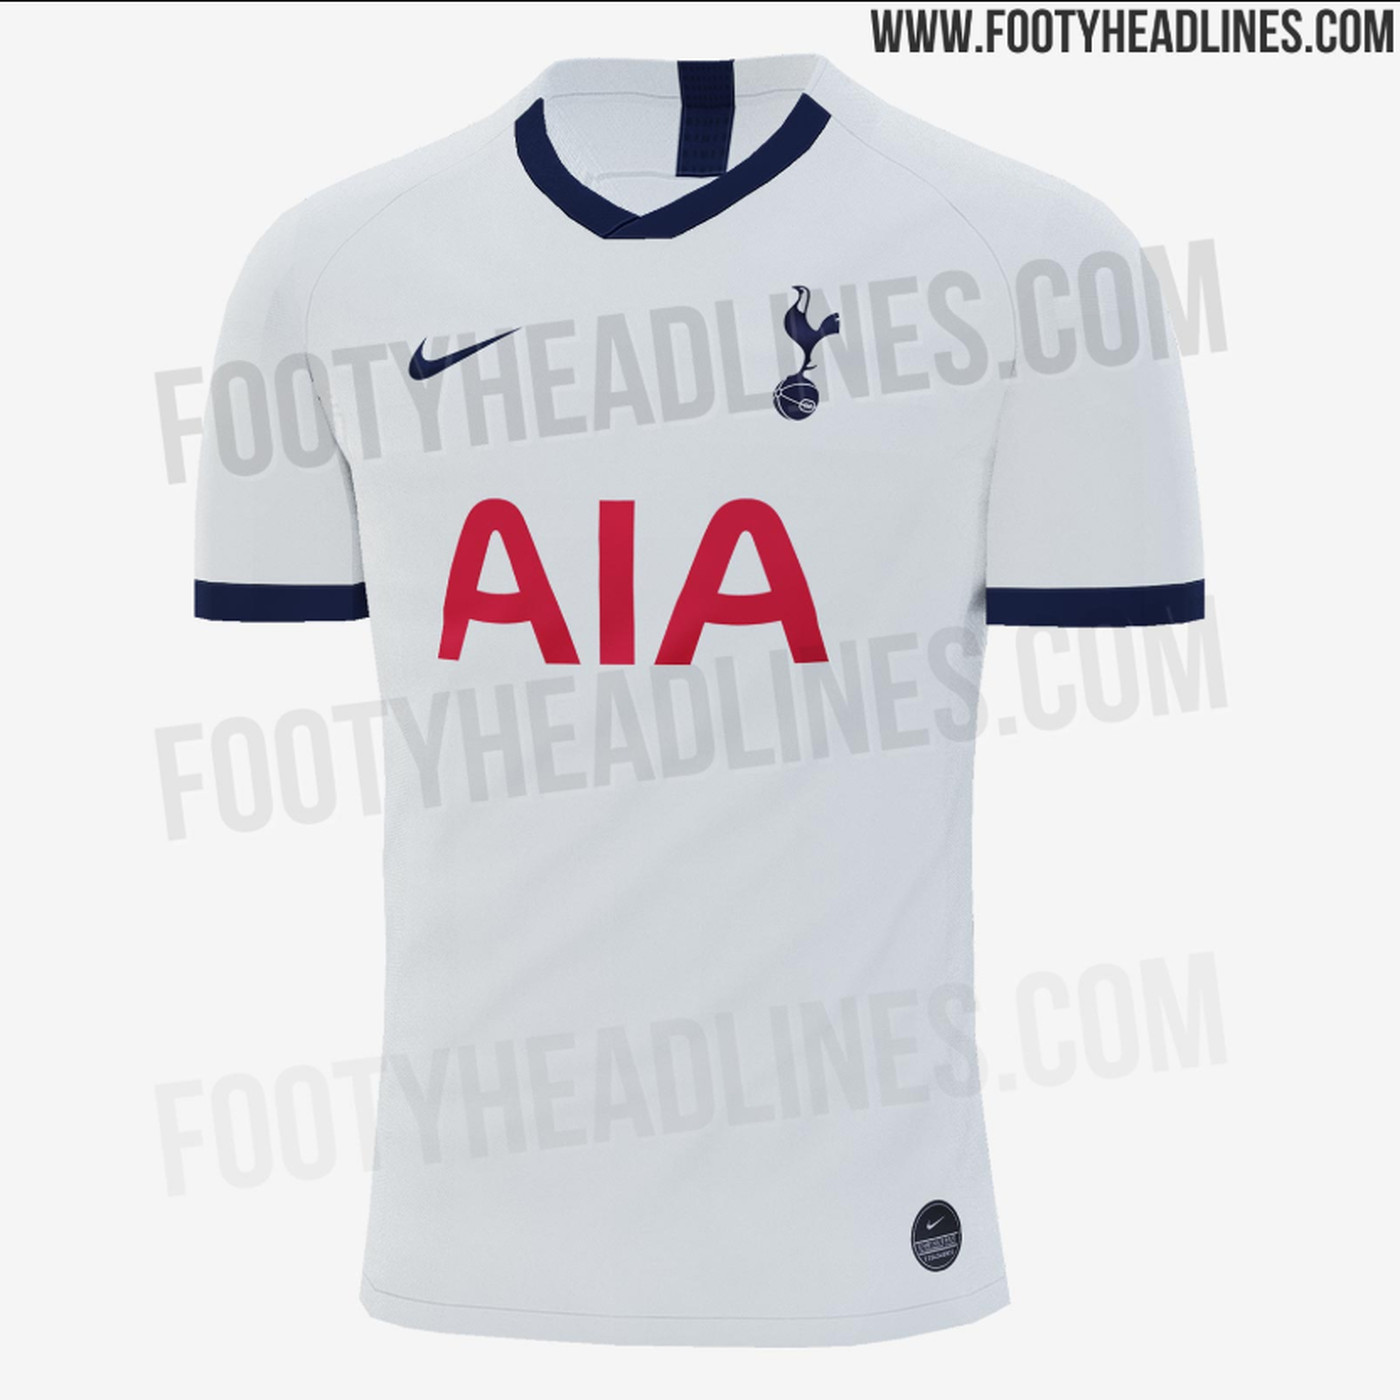 5e0e461aad2 Tottenham s 2019-20 home kits leak and this time they aren t flashy -  Cartilage Free Captain